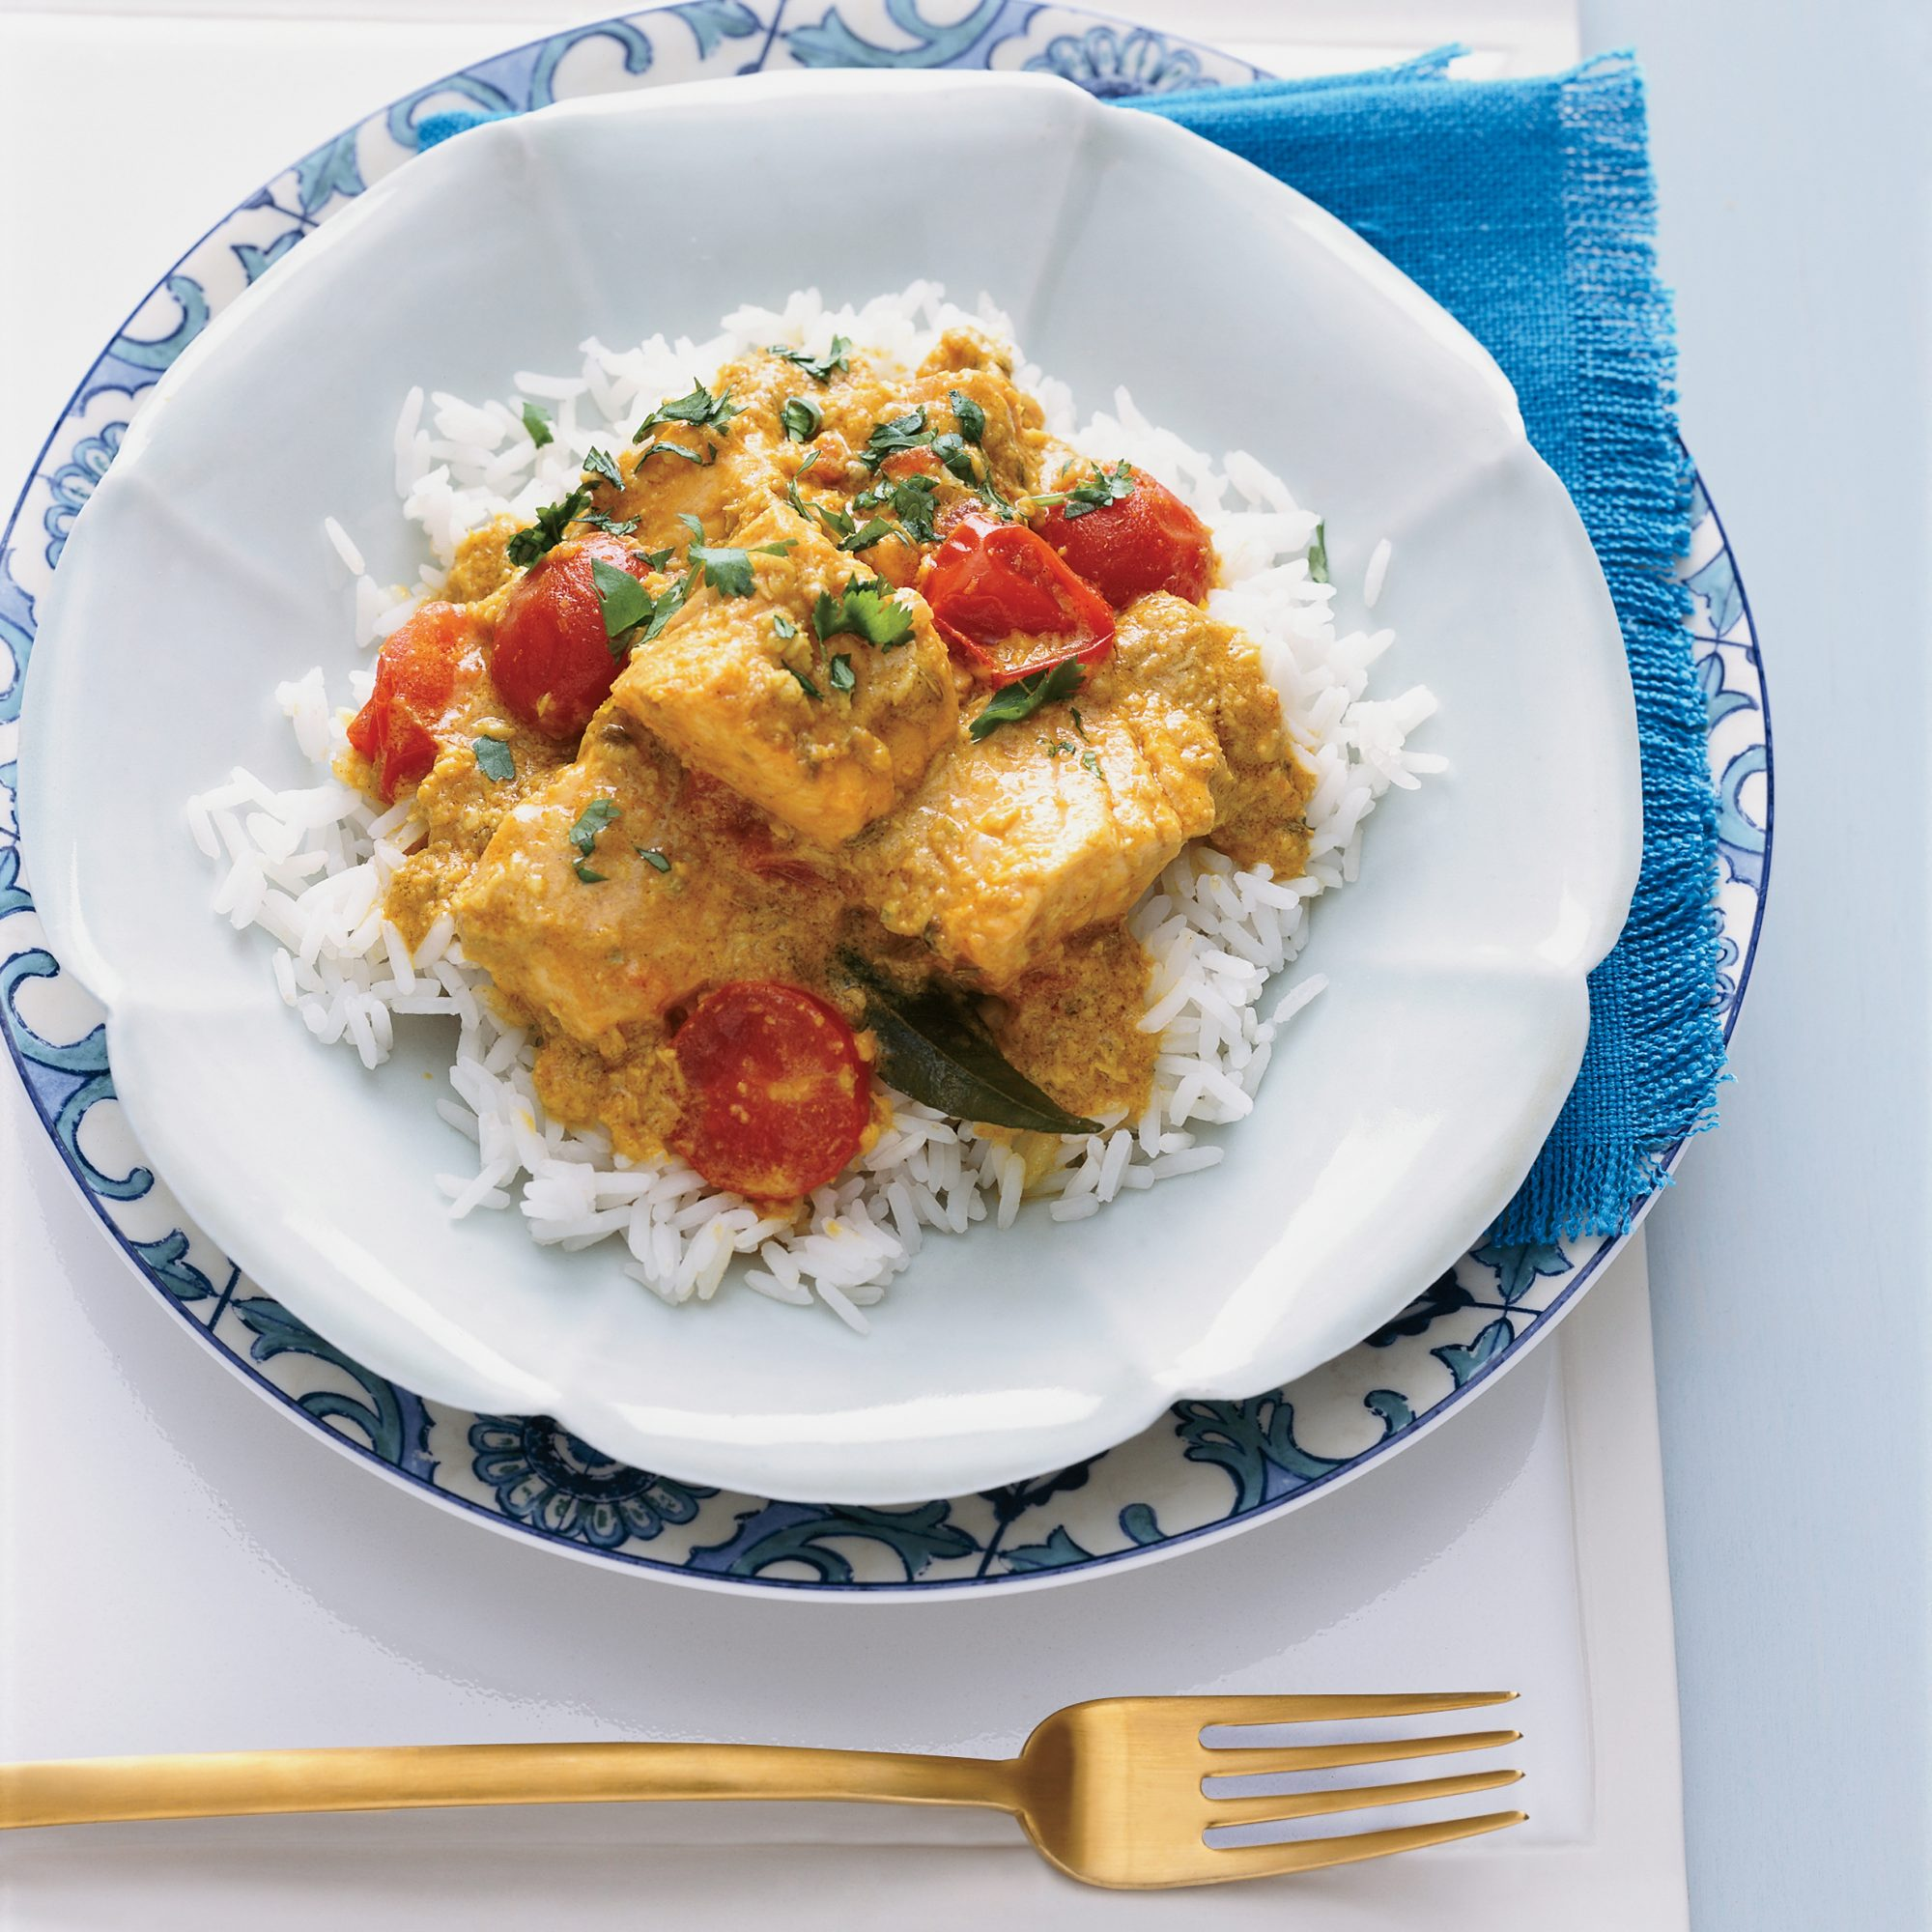 Indian Coconut Fish Curry Recipe - Anya von Bremzen | Food & Wine